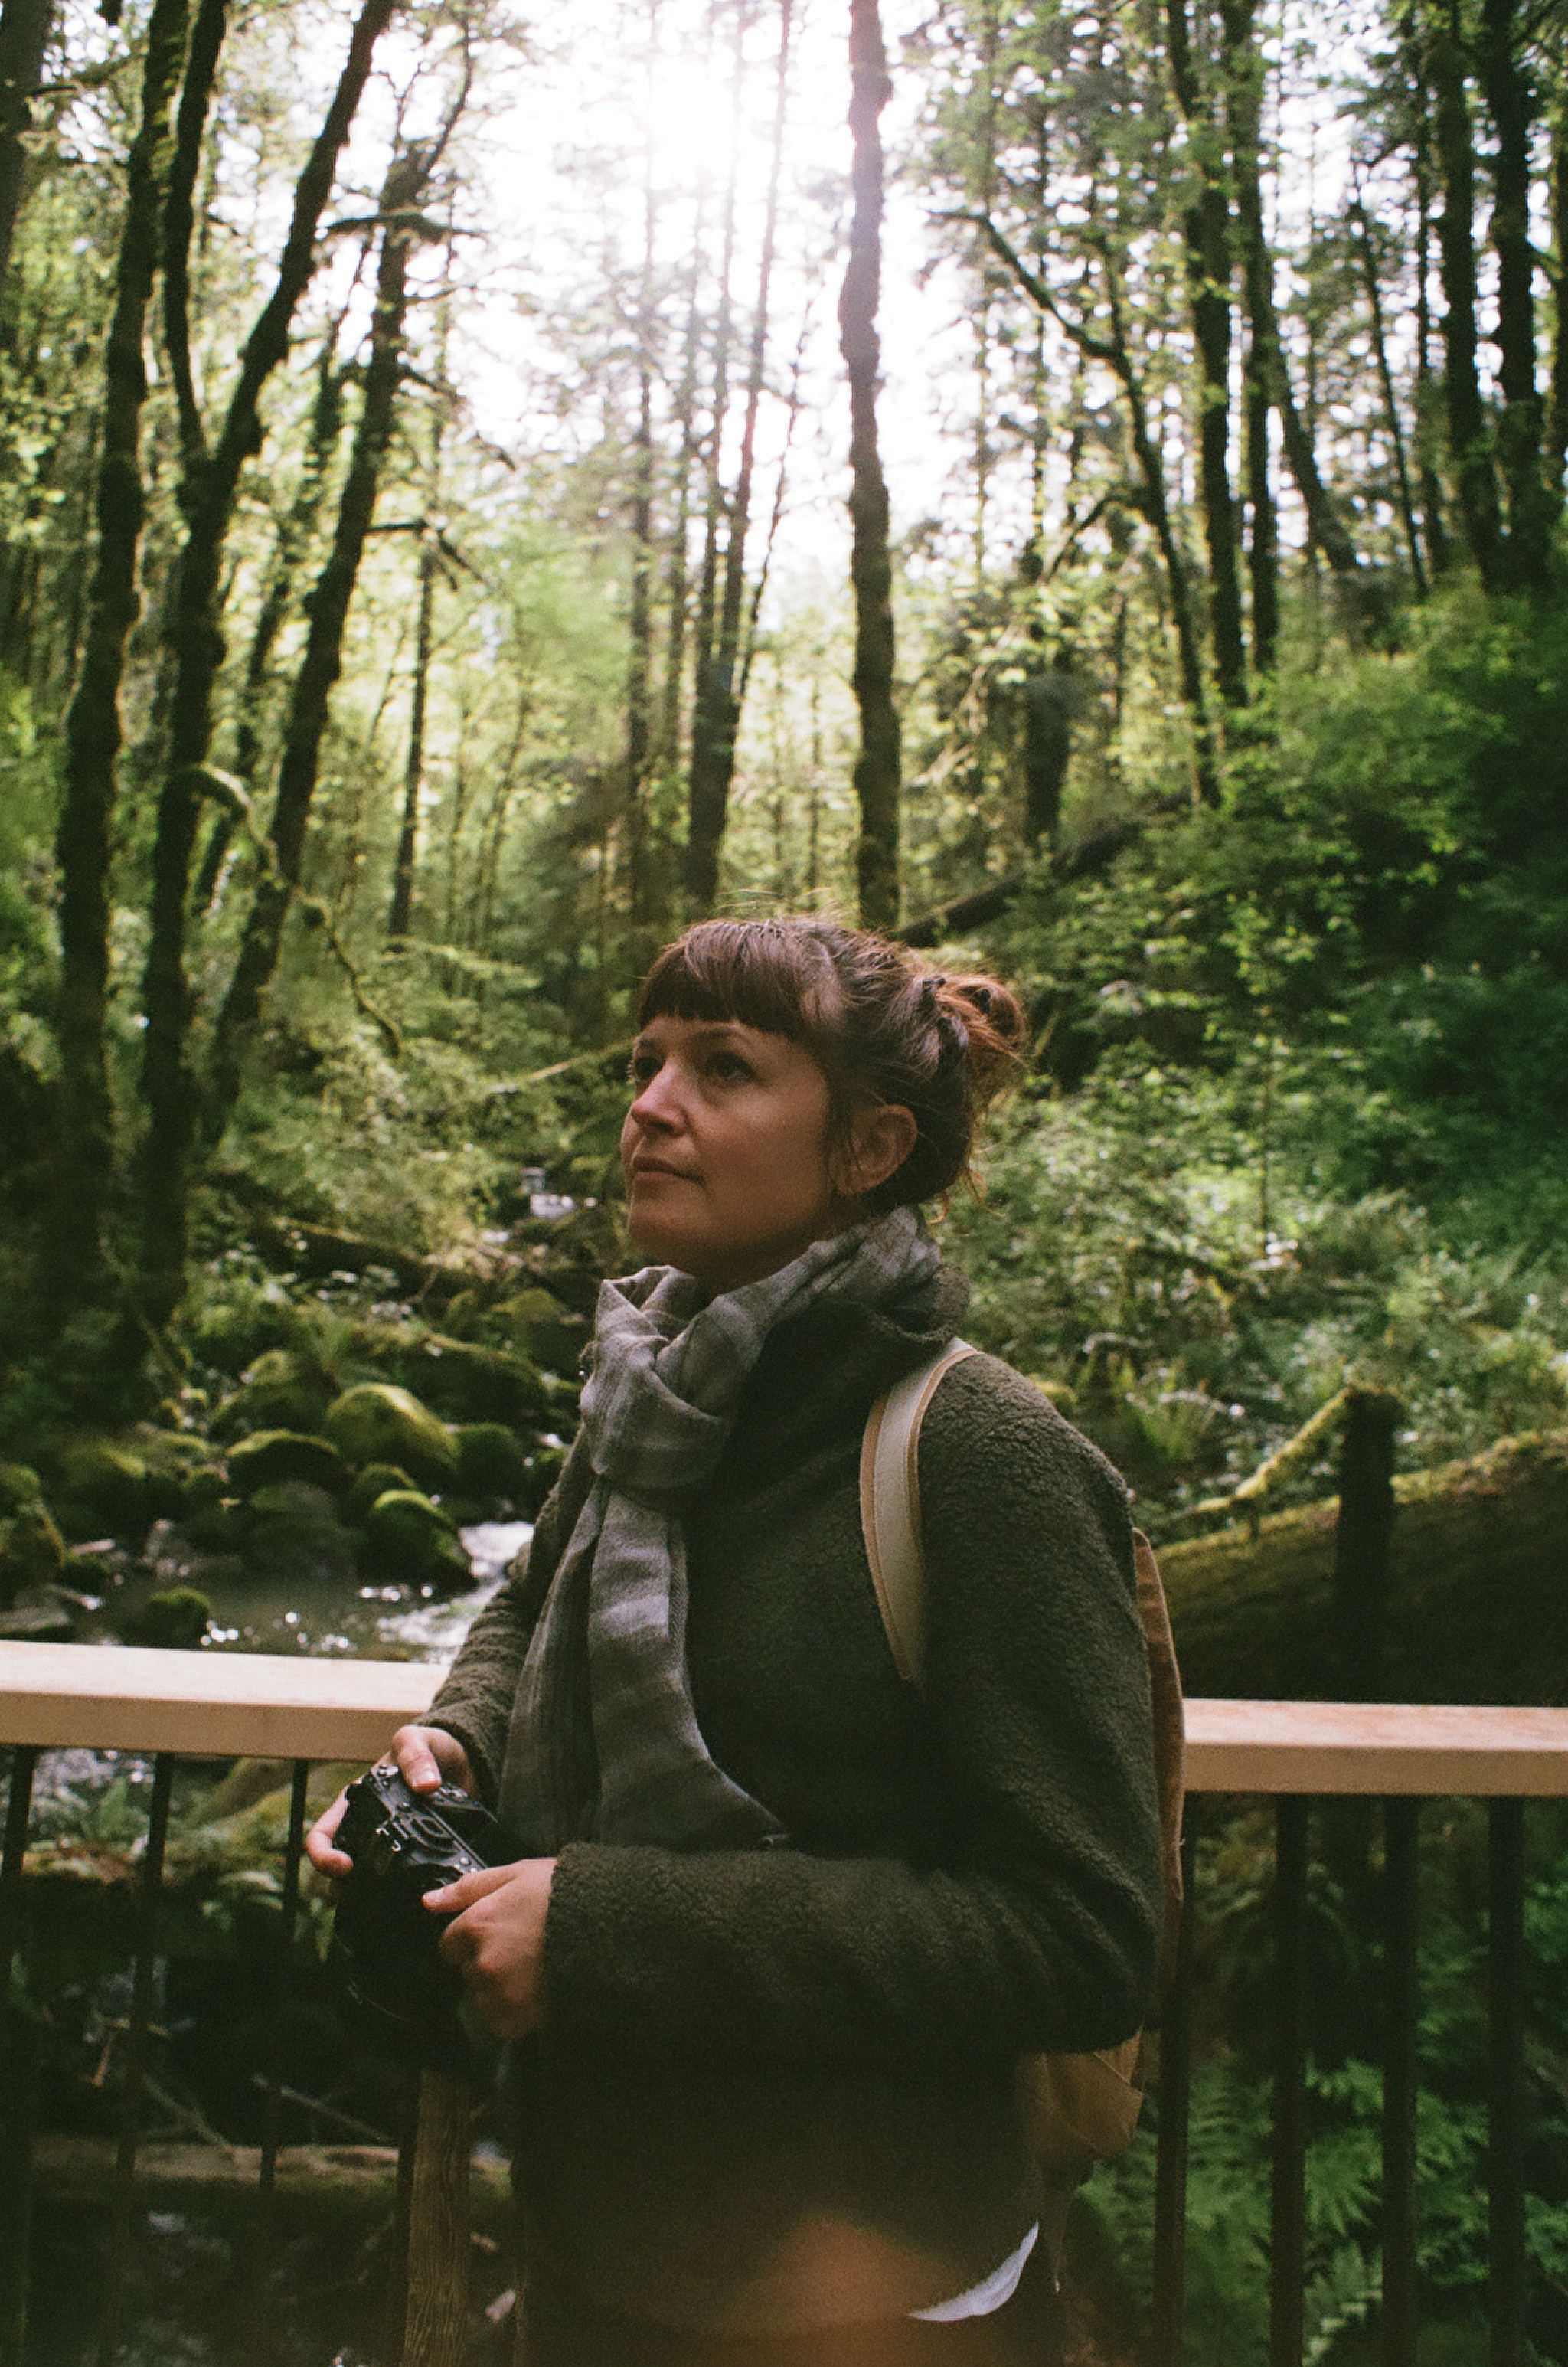 STAYWILD_PDX_35MM_41.JPG